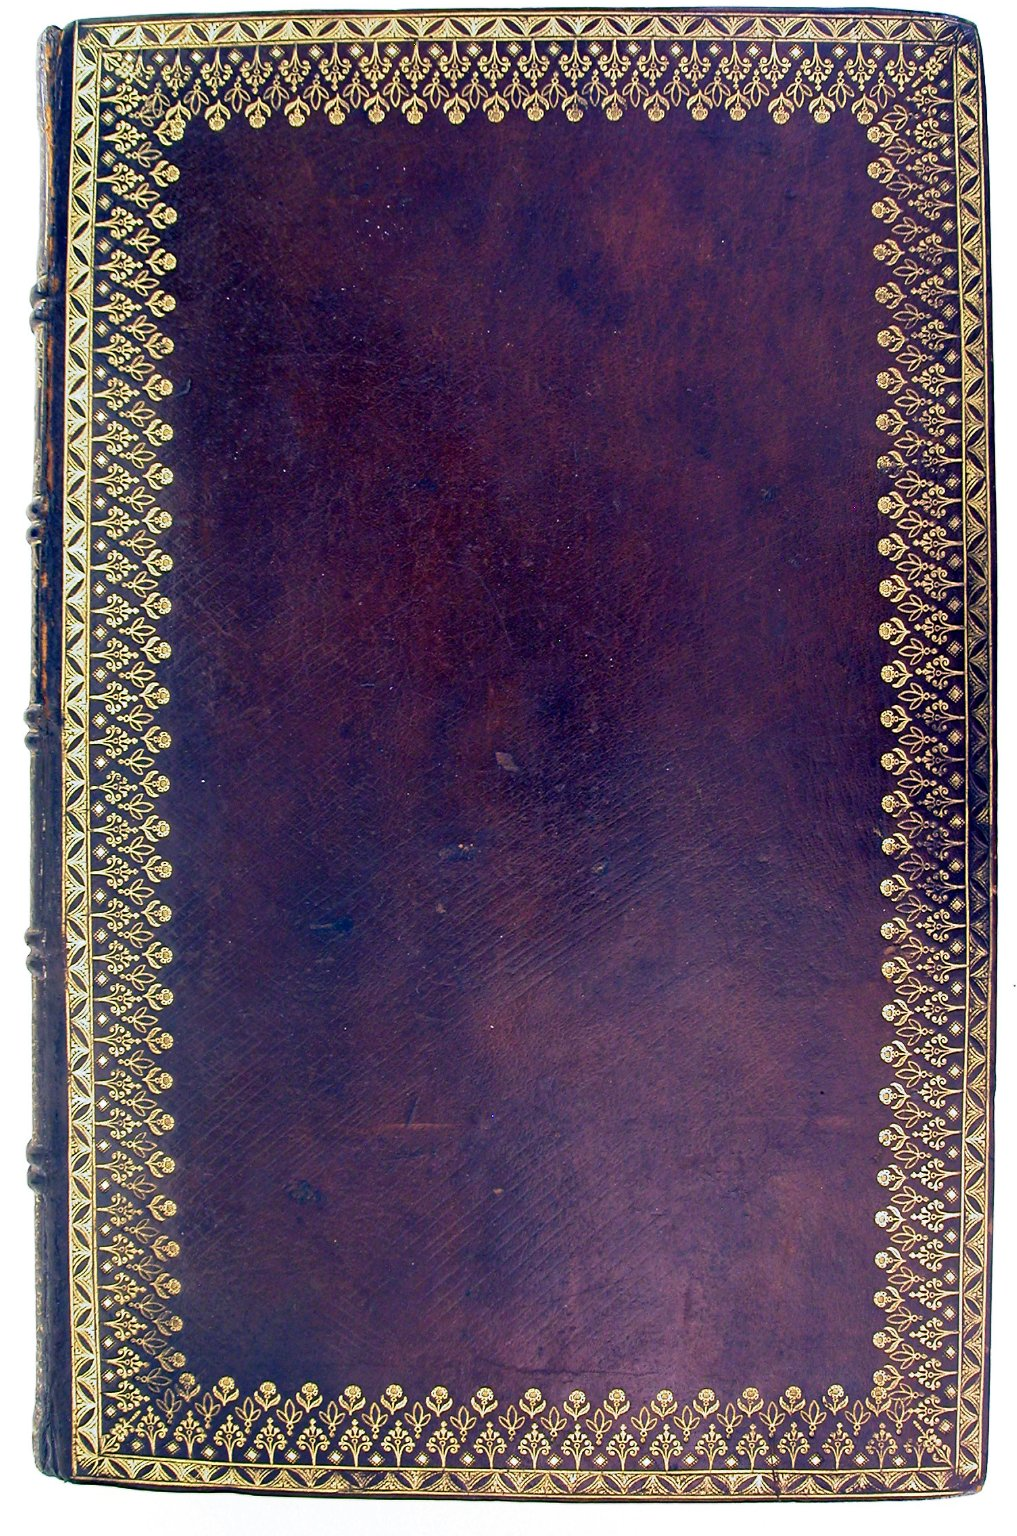 Front cover, STC 22273 fo.1 no.08.